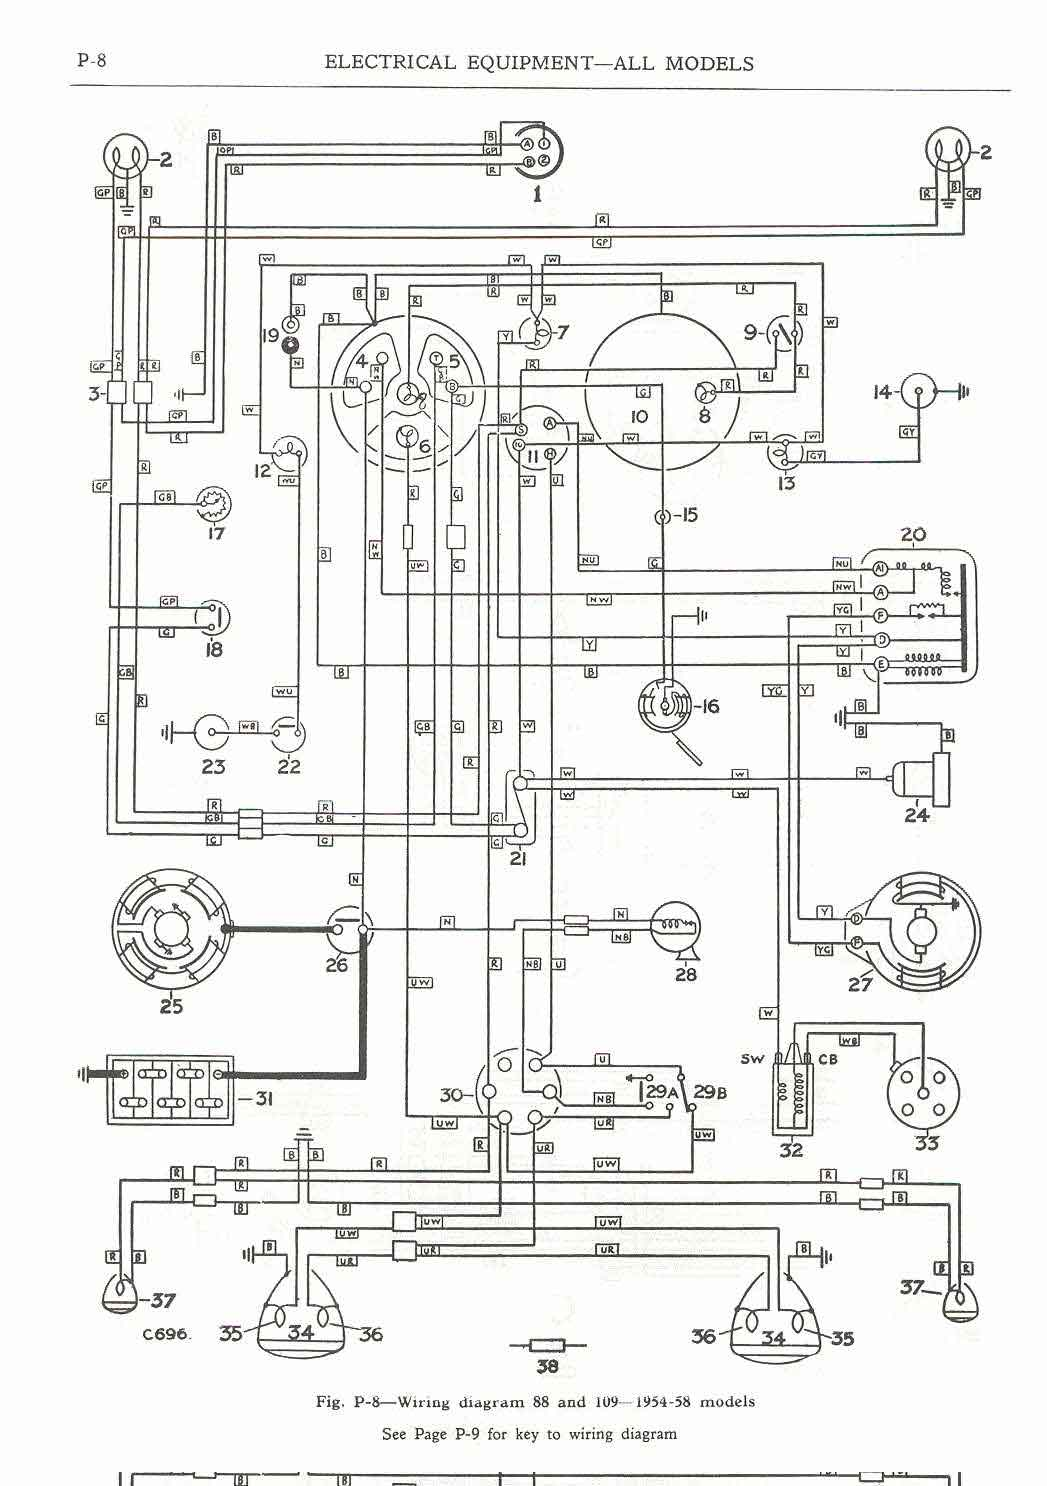 """Wiring Diagram, 88"" and 109"" - 1954-58 models"""